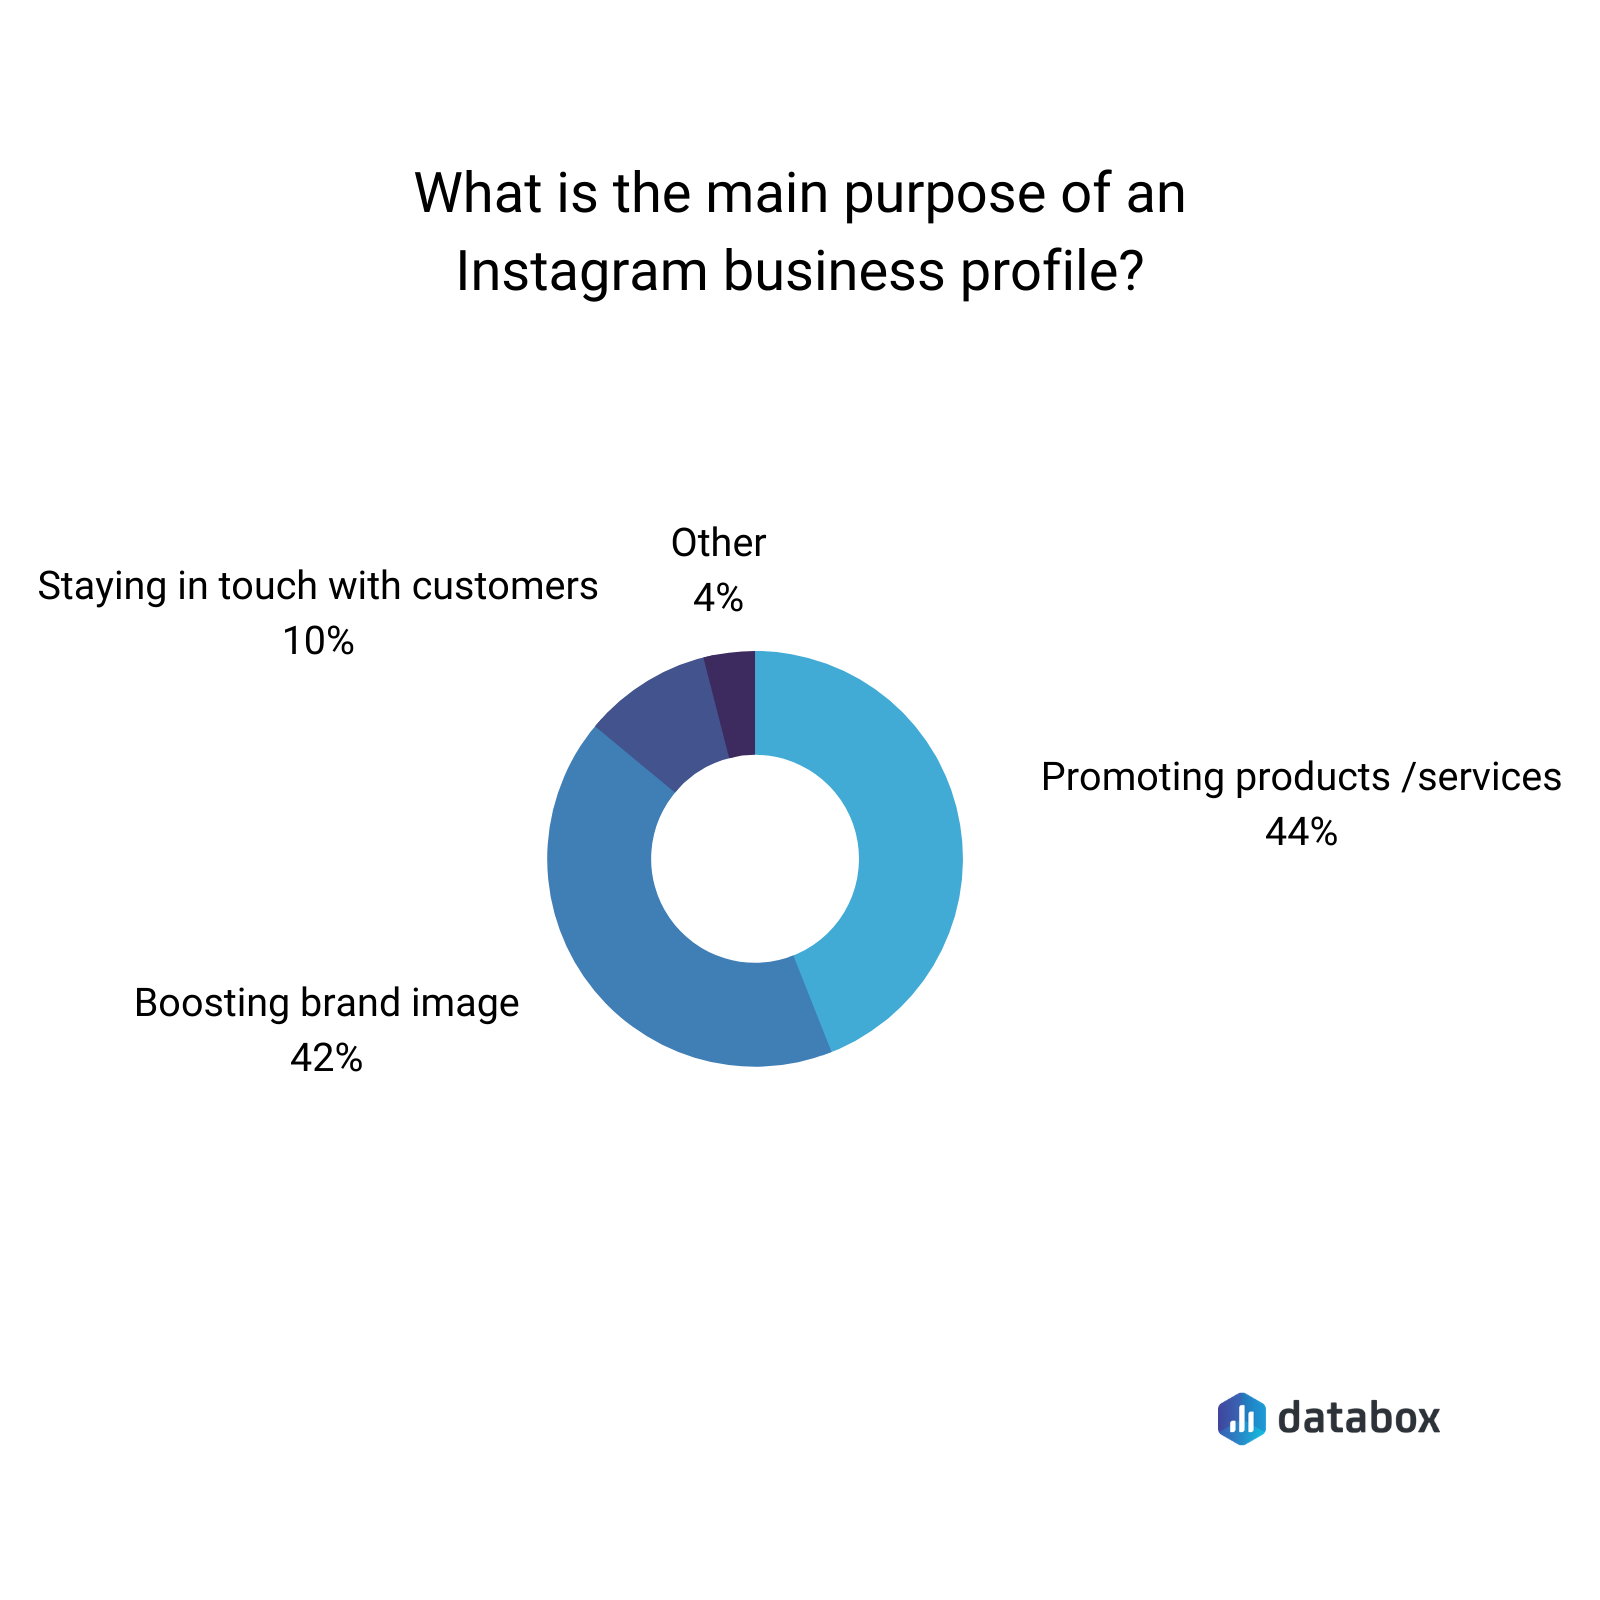 Main purpose of Instagram business profile Databox survey results